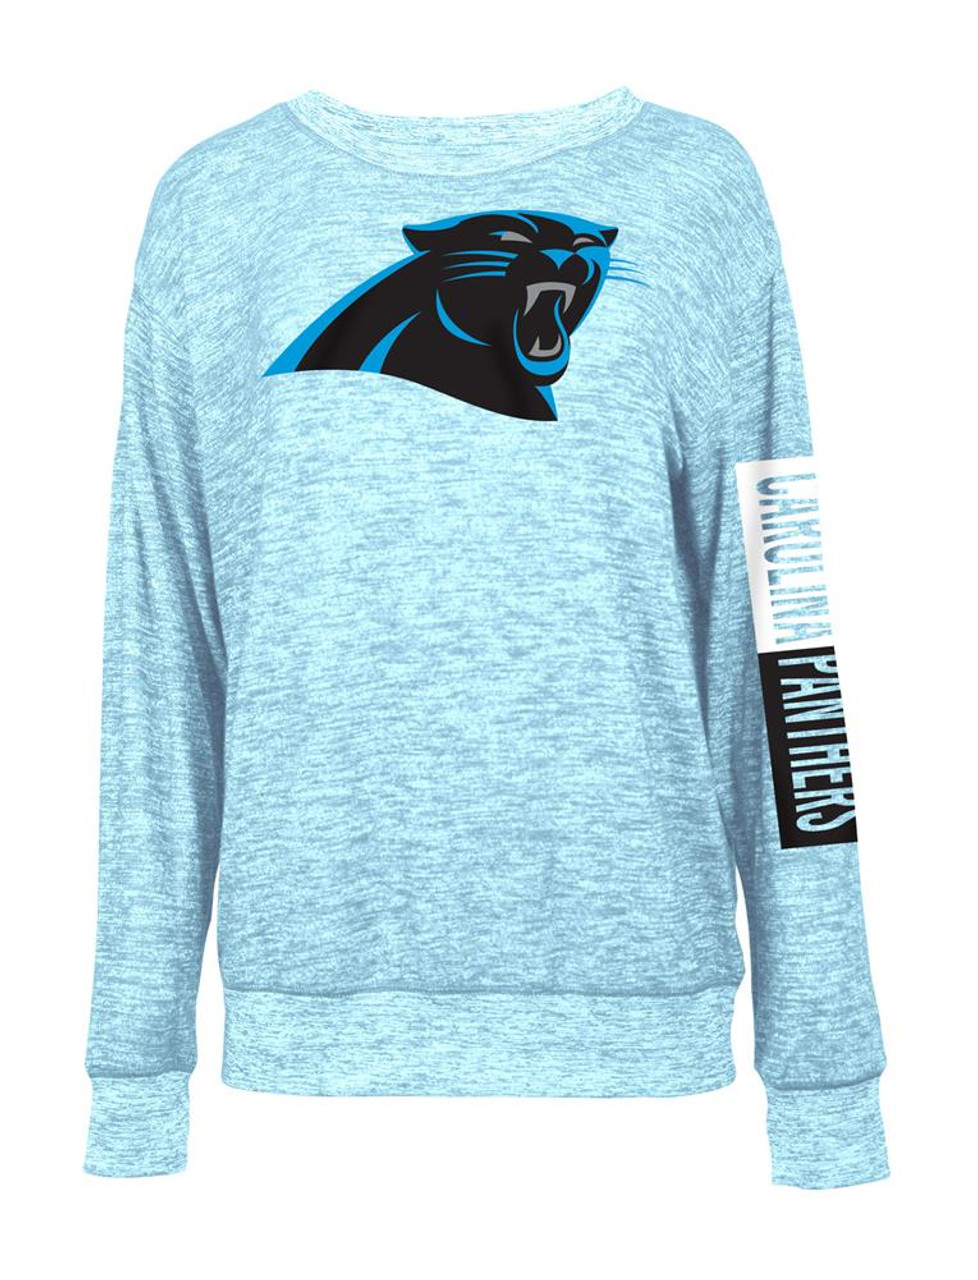 Carolina Panthers Sweater Women's Knit Pullover